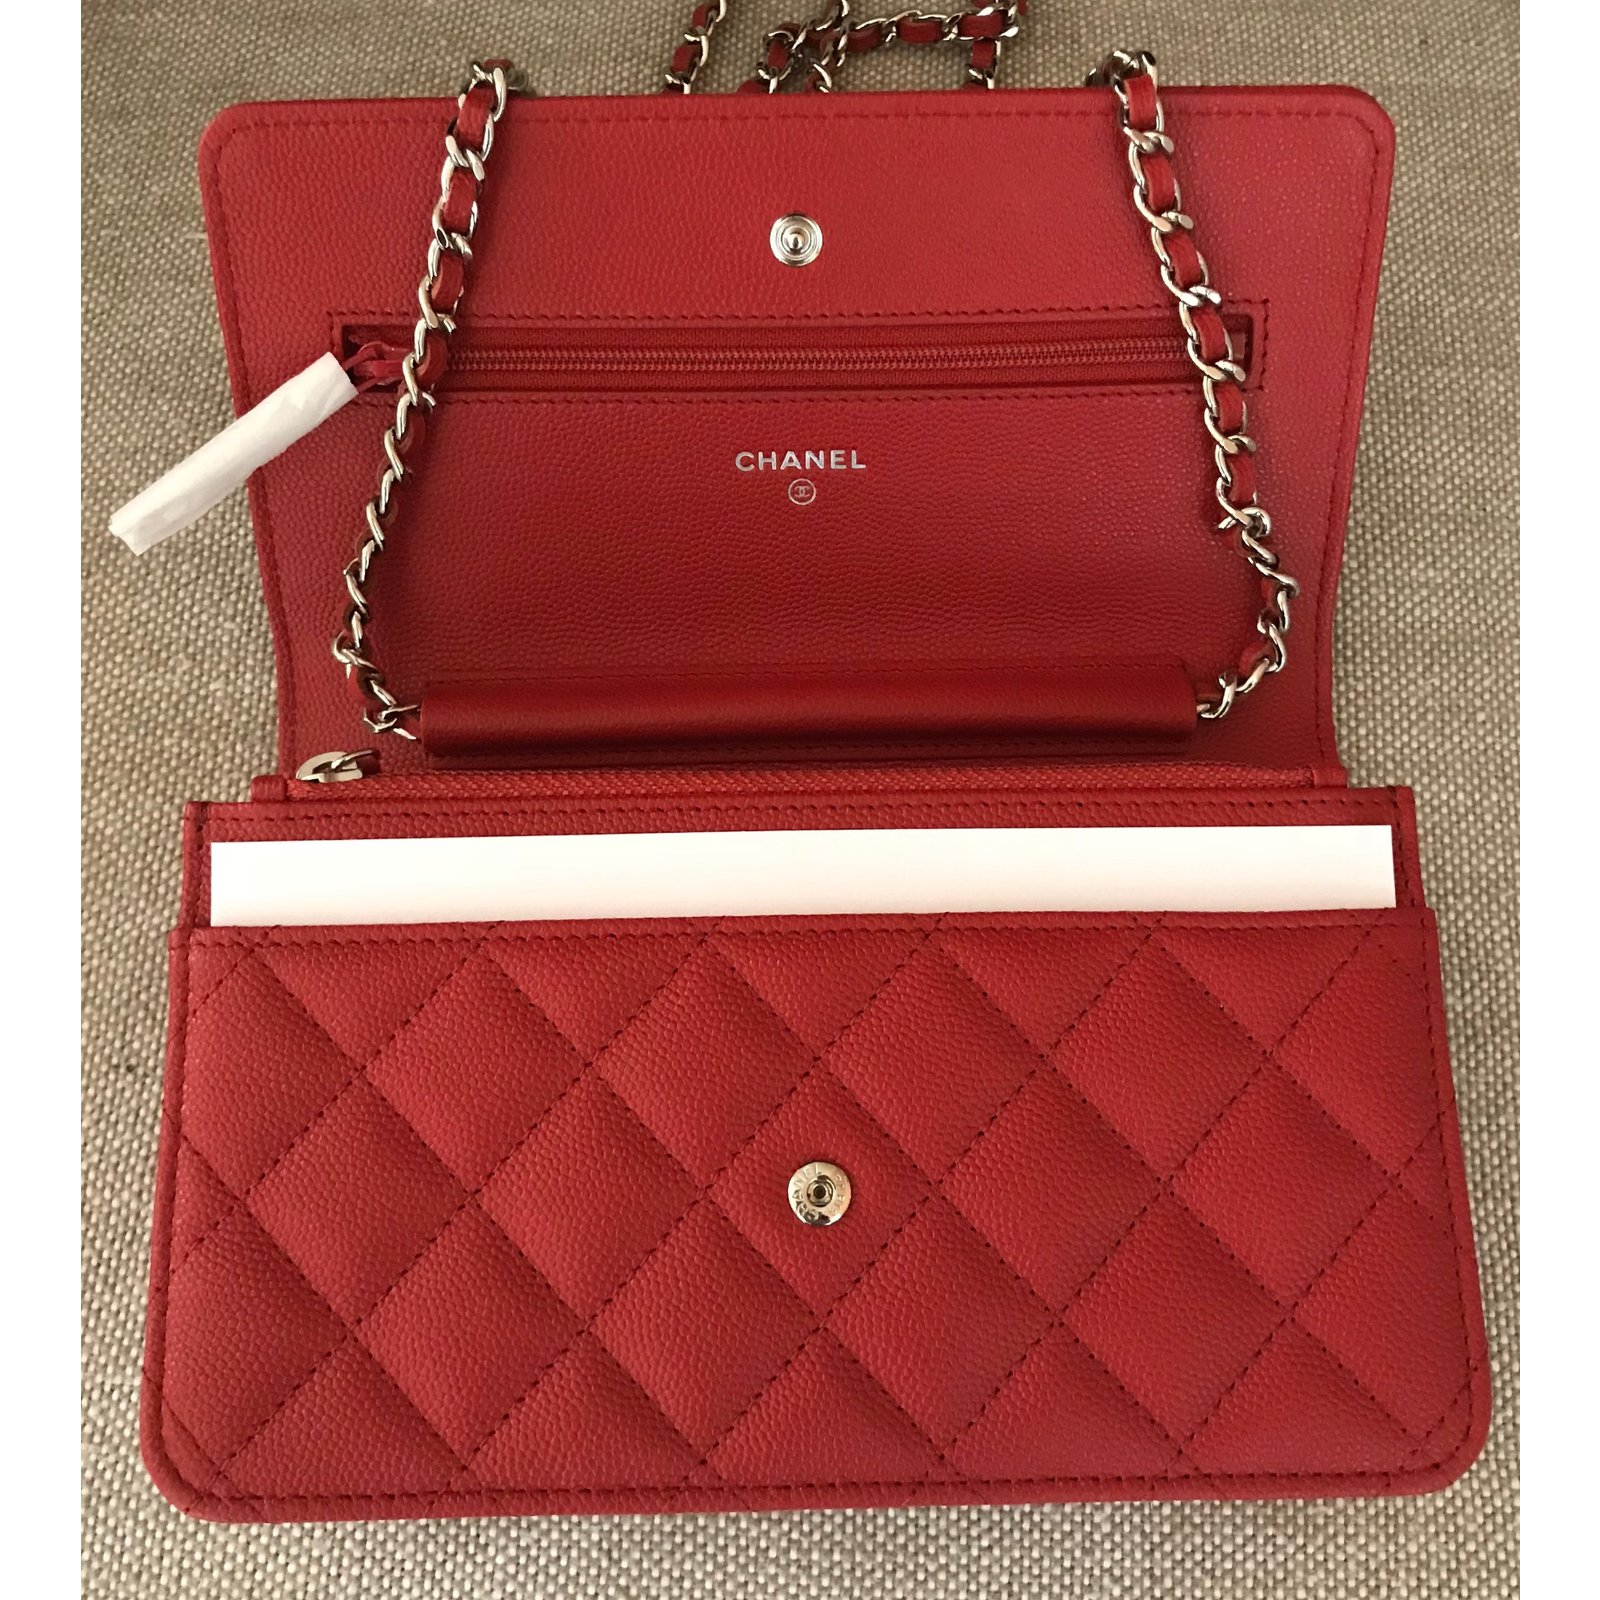 5affd1fef24b Chanel Wallet on Chain Red Caviar Leather with Shiny Silver Chain Handbags  Leather Red ref.65209 - Joli Closet